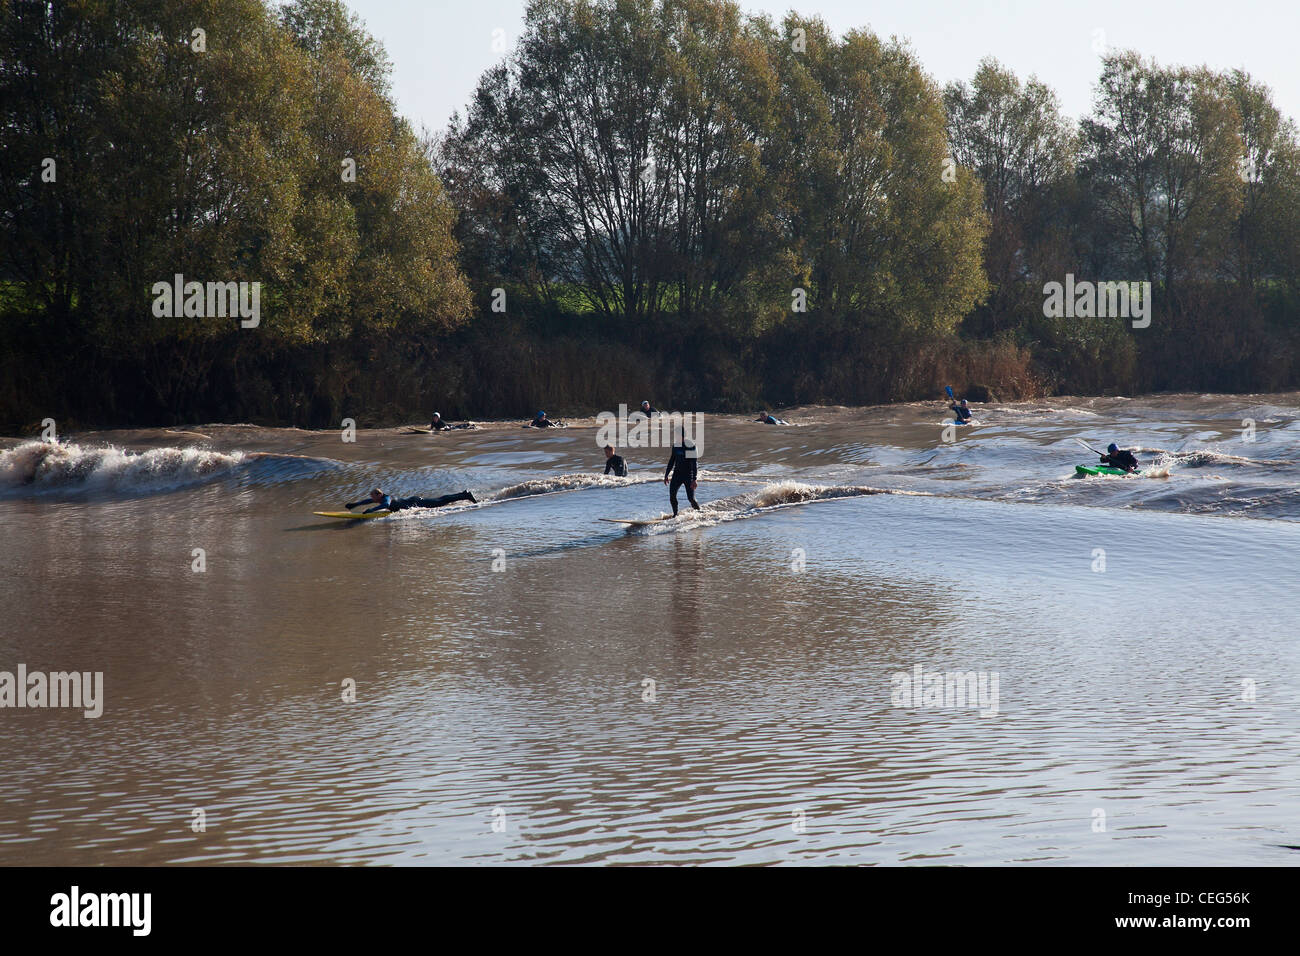 Surfers On The Severn Bore On The River Severn At